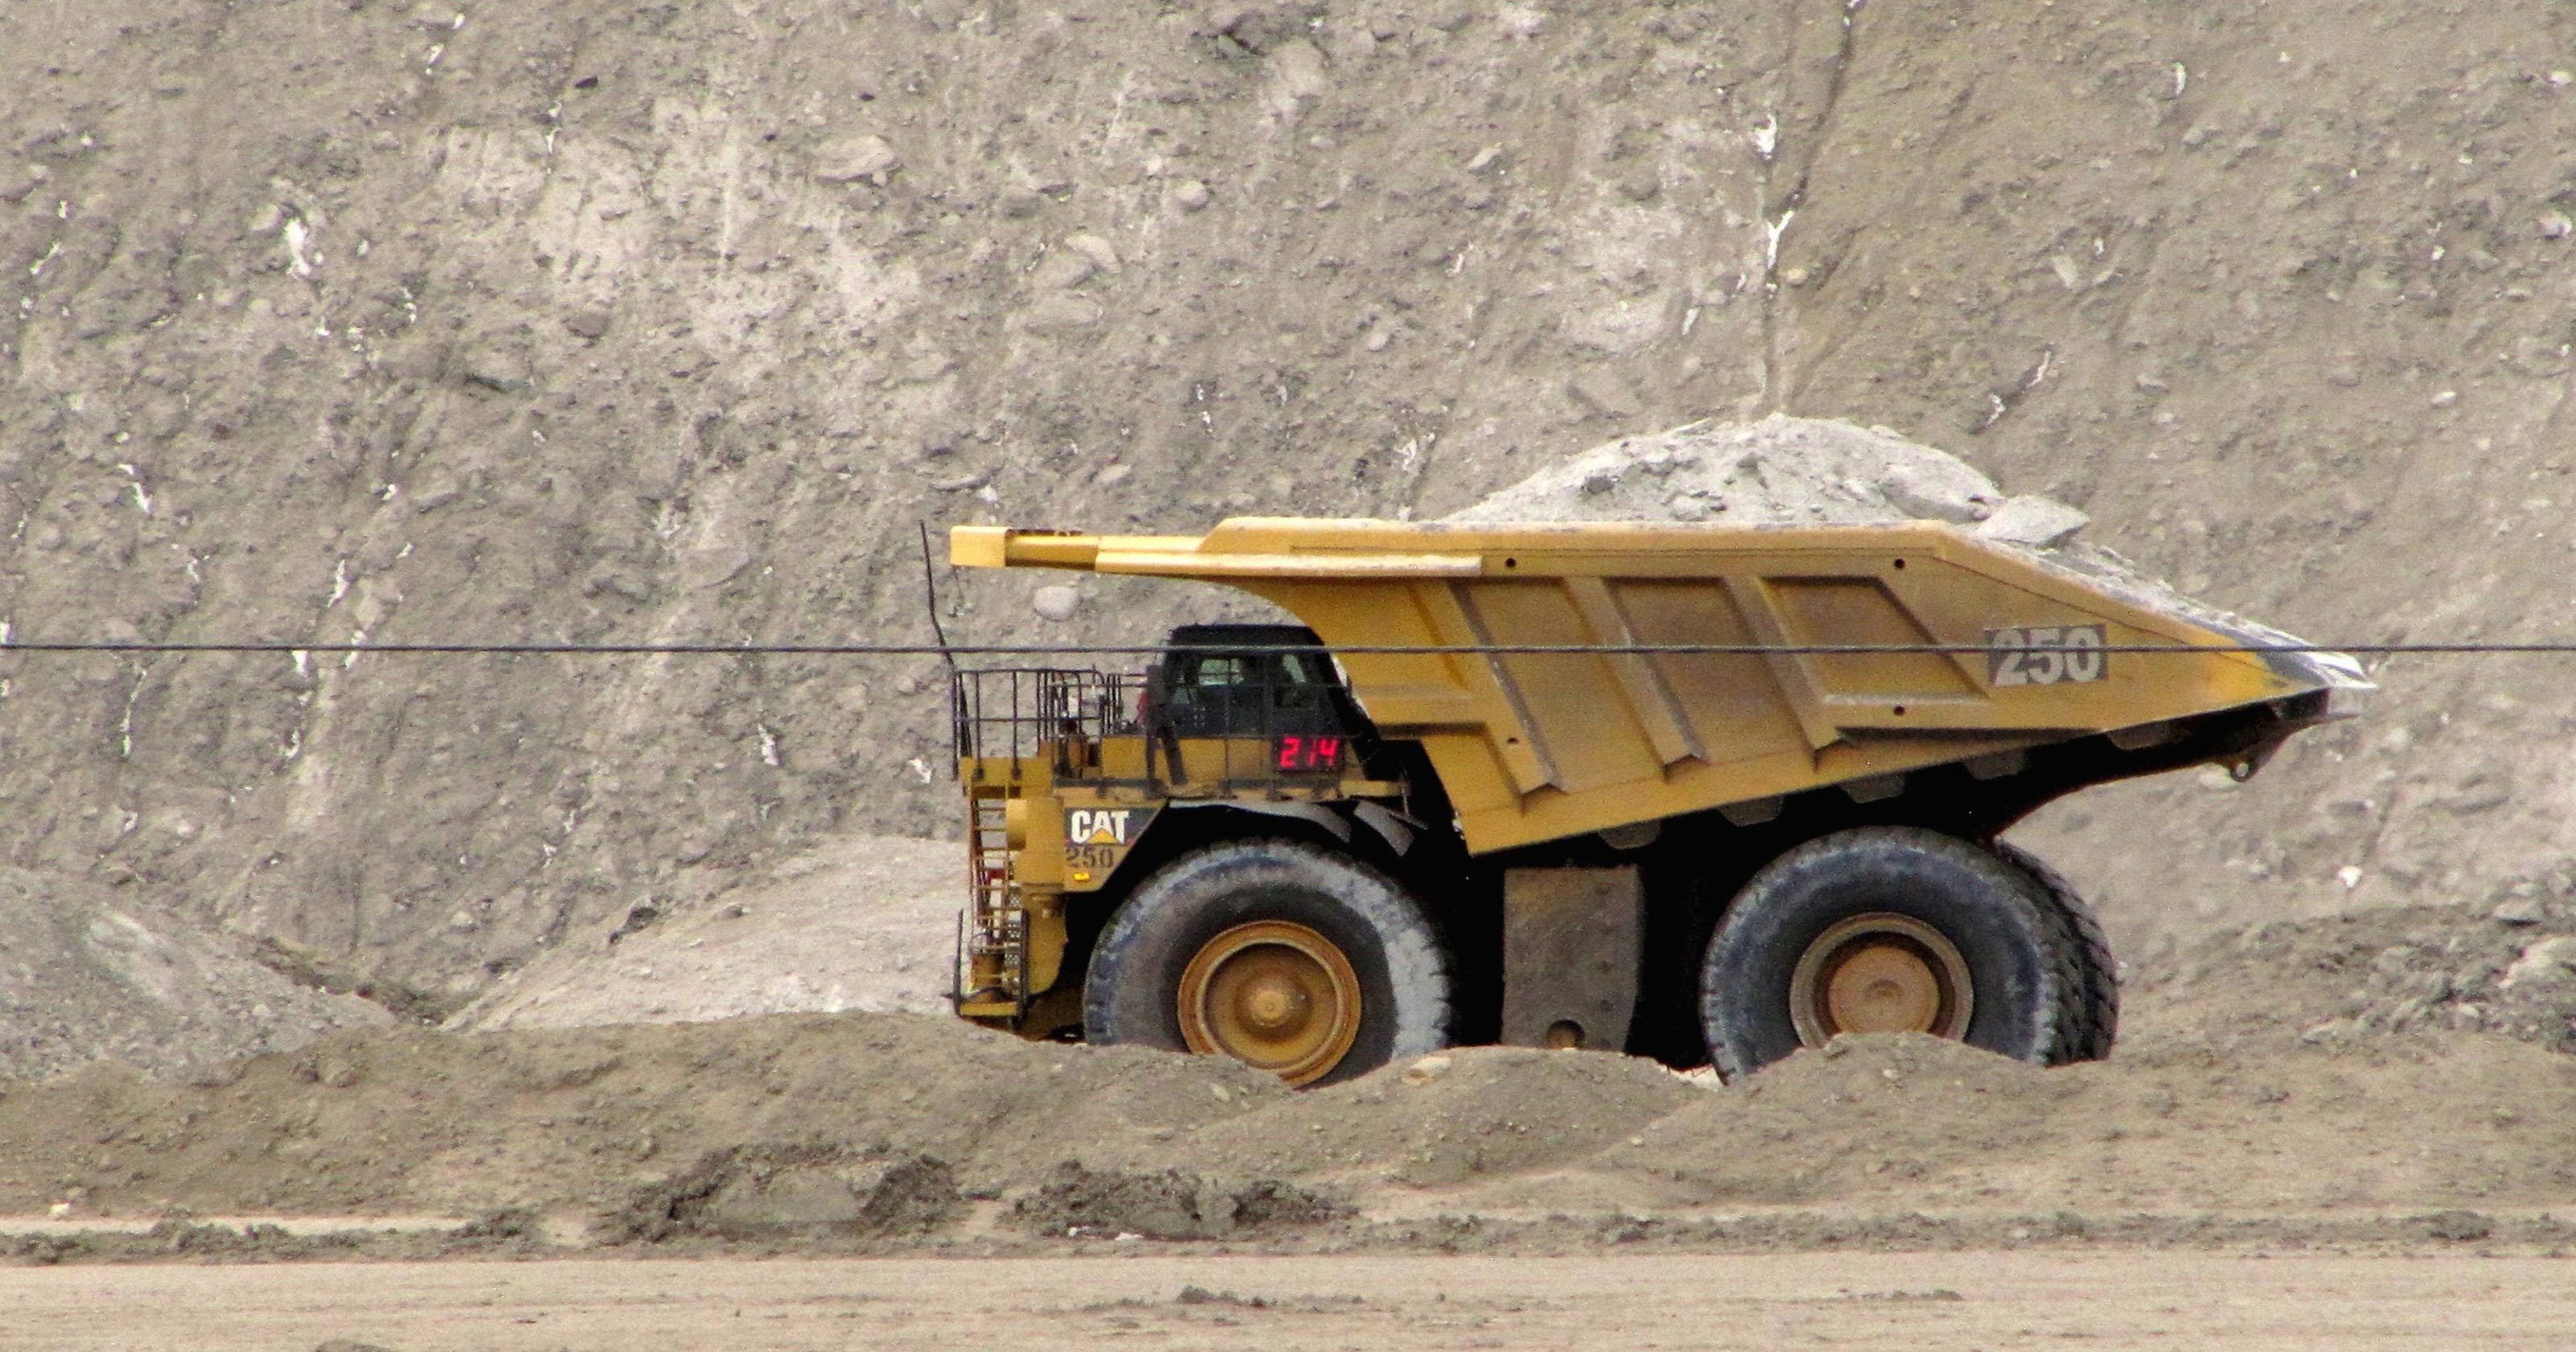 Montana S Mining Future Could Lie In Ordinary Rock